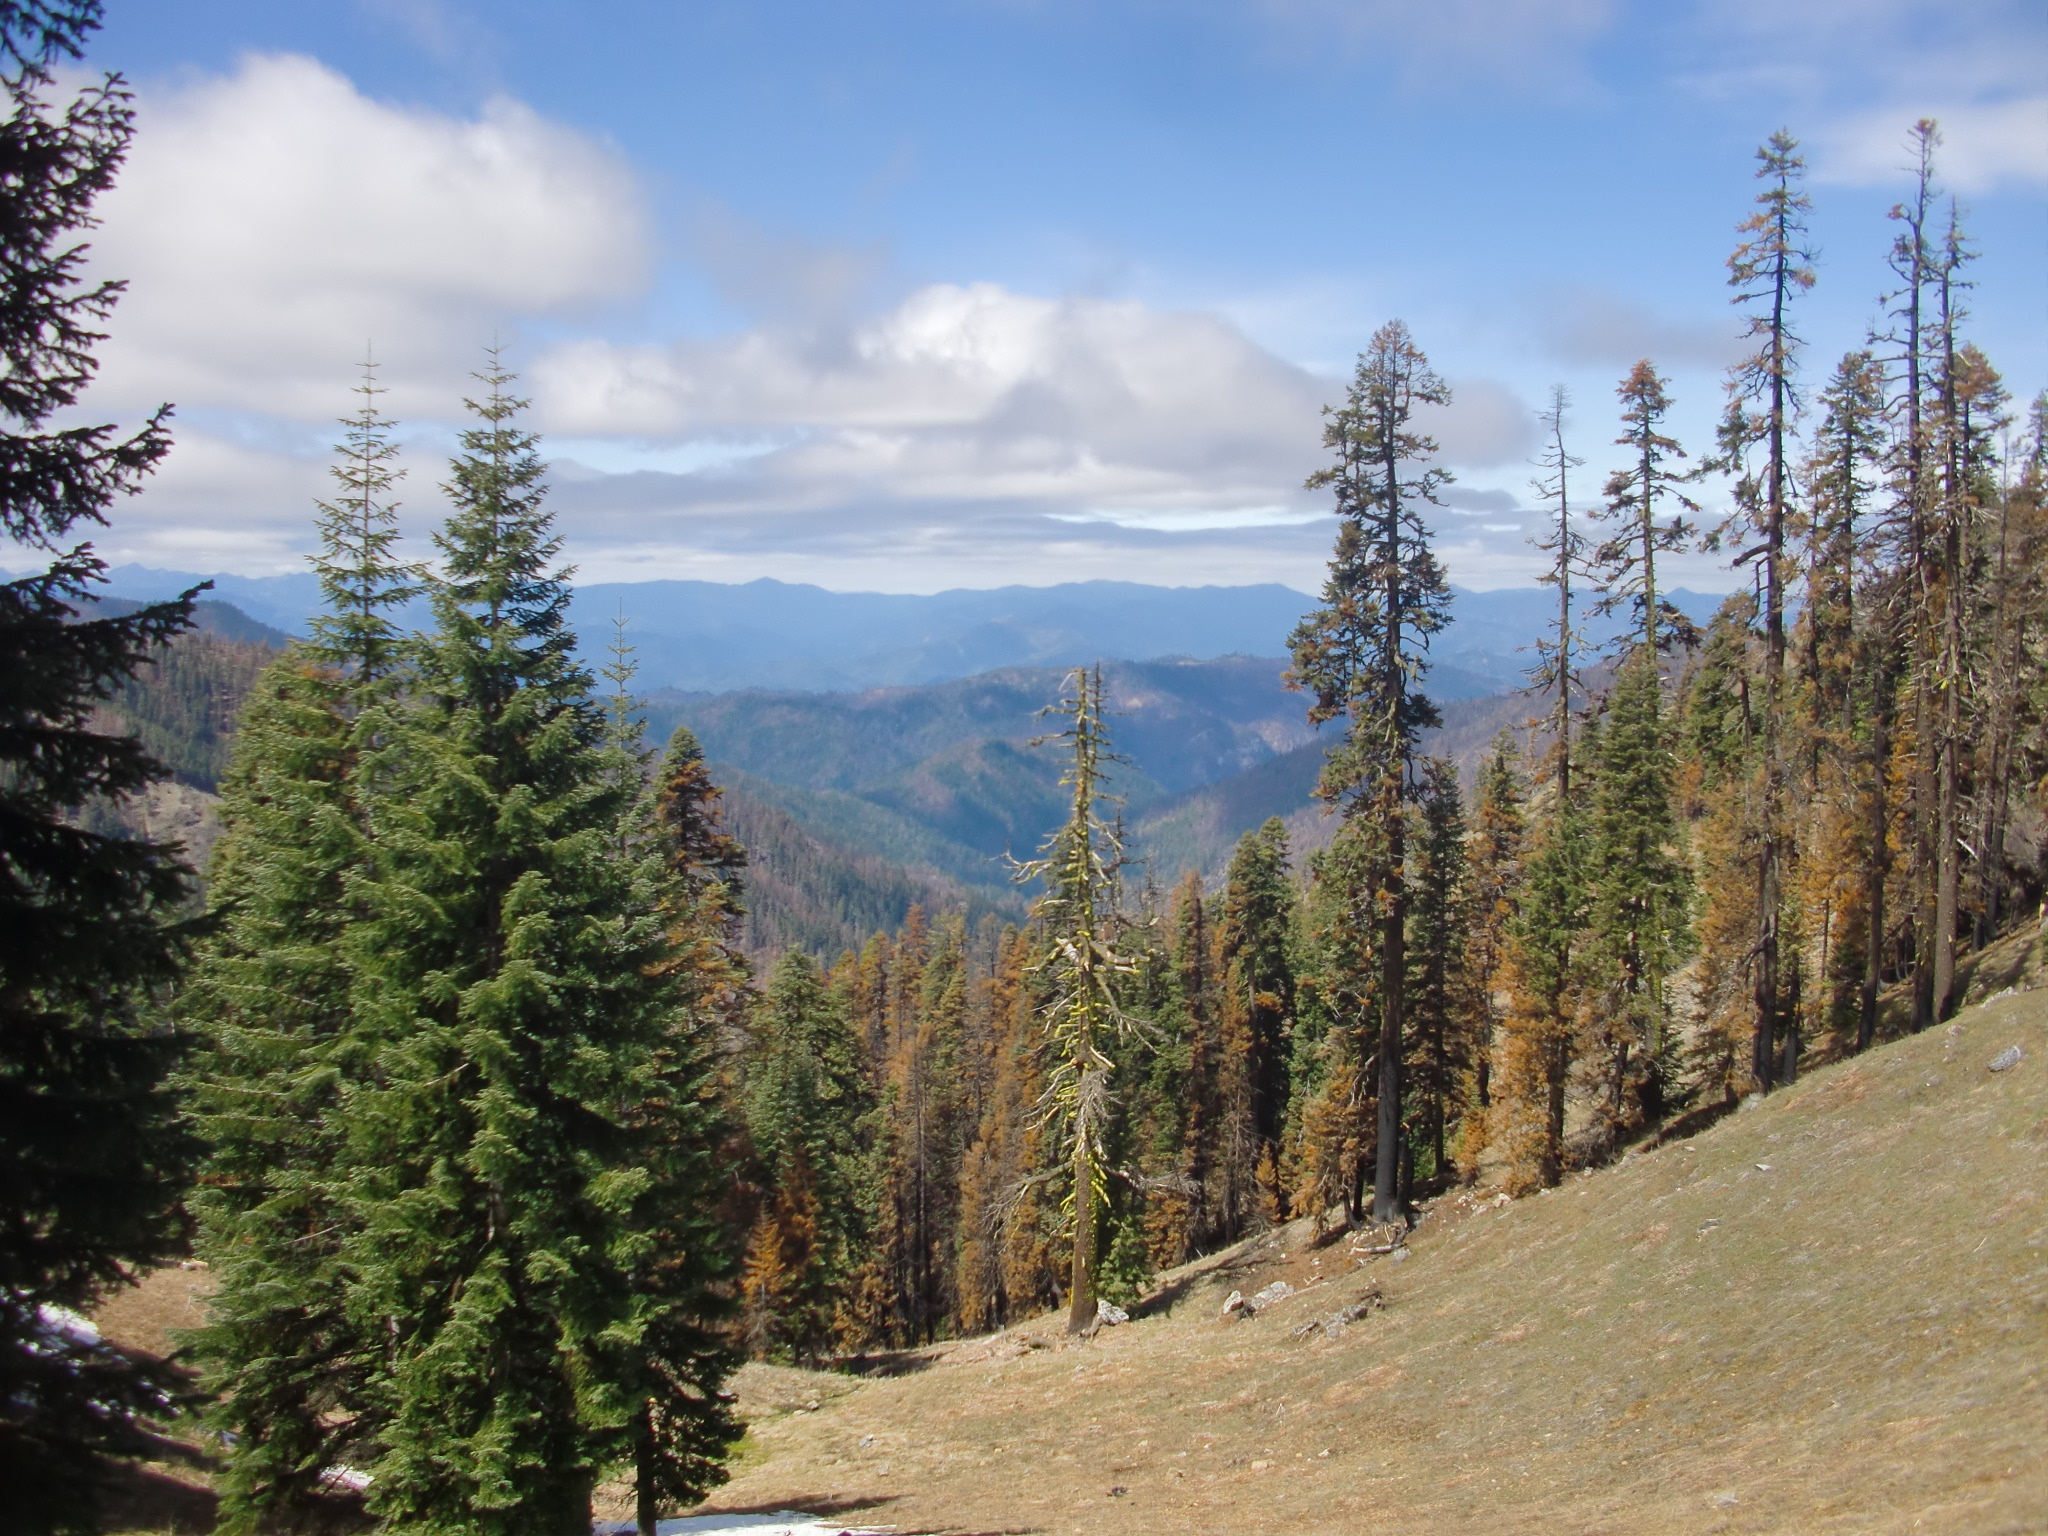 Fires burned on steep slopes in the Klamath National Forest during the summer of 2014. Pictured here is some of the resulting green and blackened trees just months after the mixed-severity burn in the Grider Creek drainage; a critical wildlife corridor that the National Forest proposed for heavy logging post-fire.